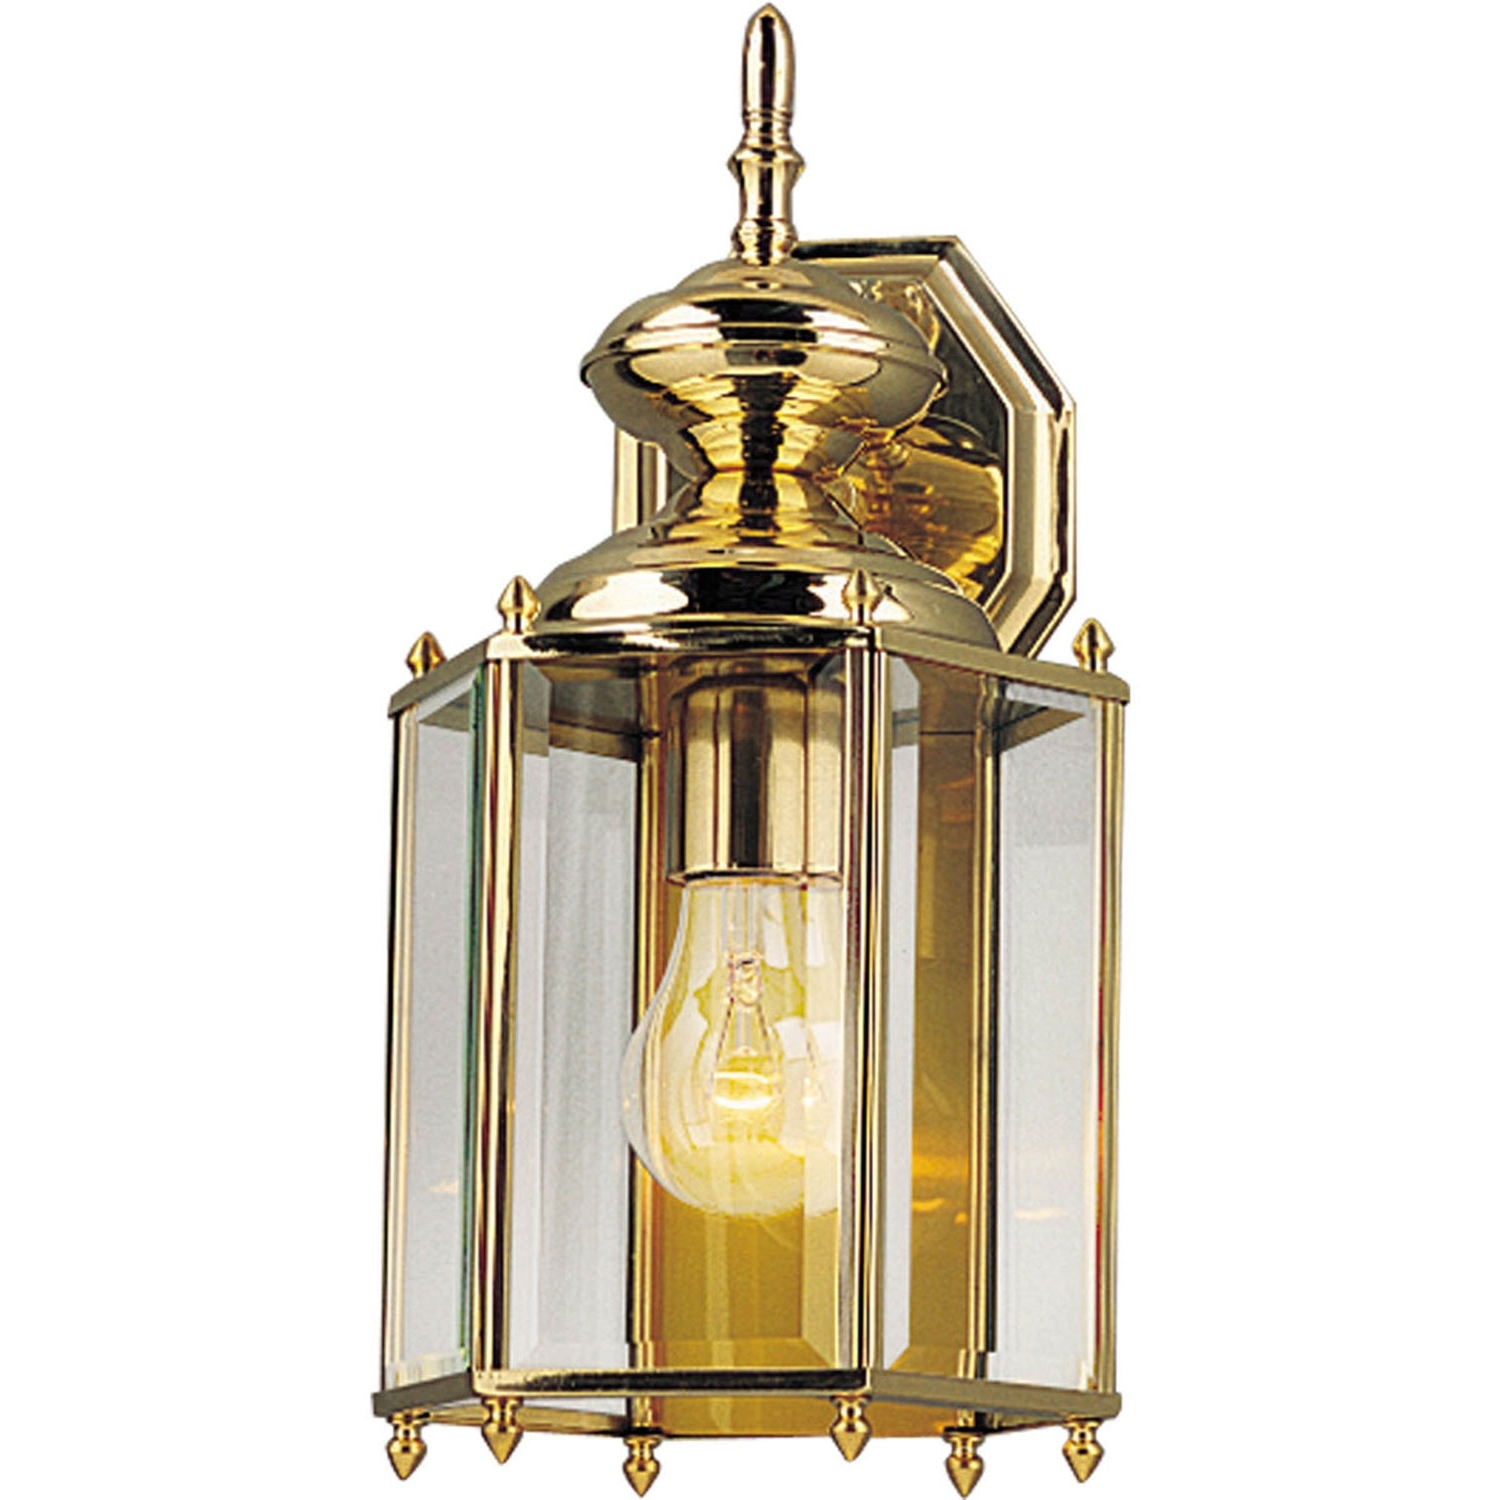 Brass Outdoor Lanterns With Regard To Well Known Progress Lighting P5832 10: Brassguard Lanterns Polished Brass One (View 8 of 20)